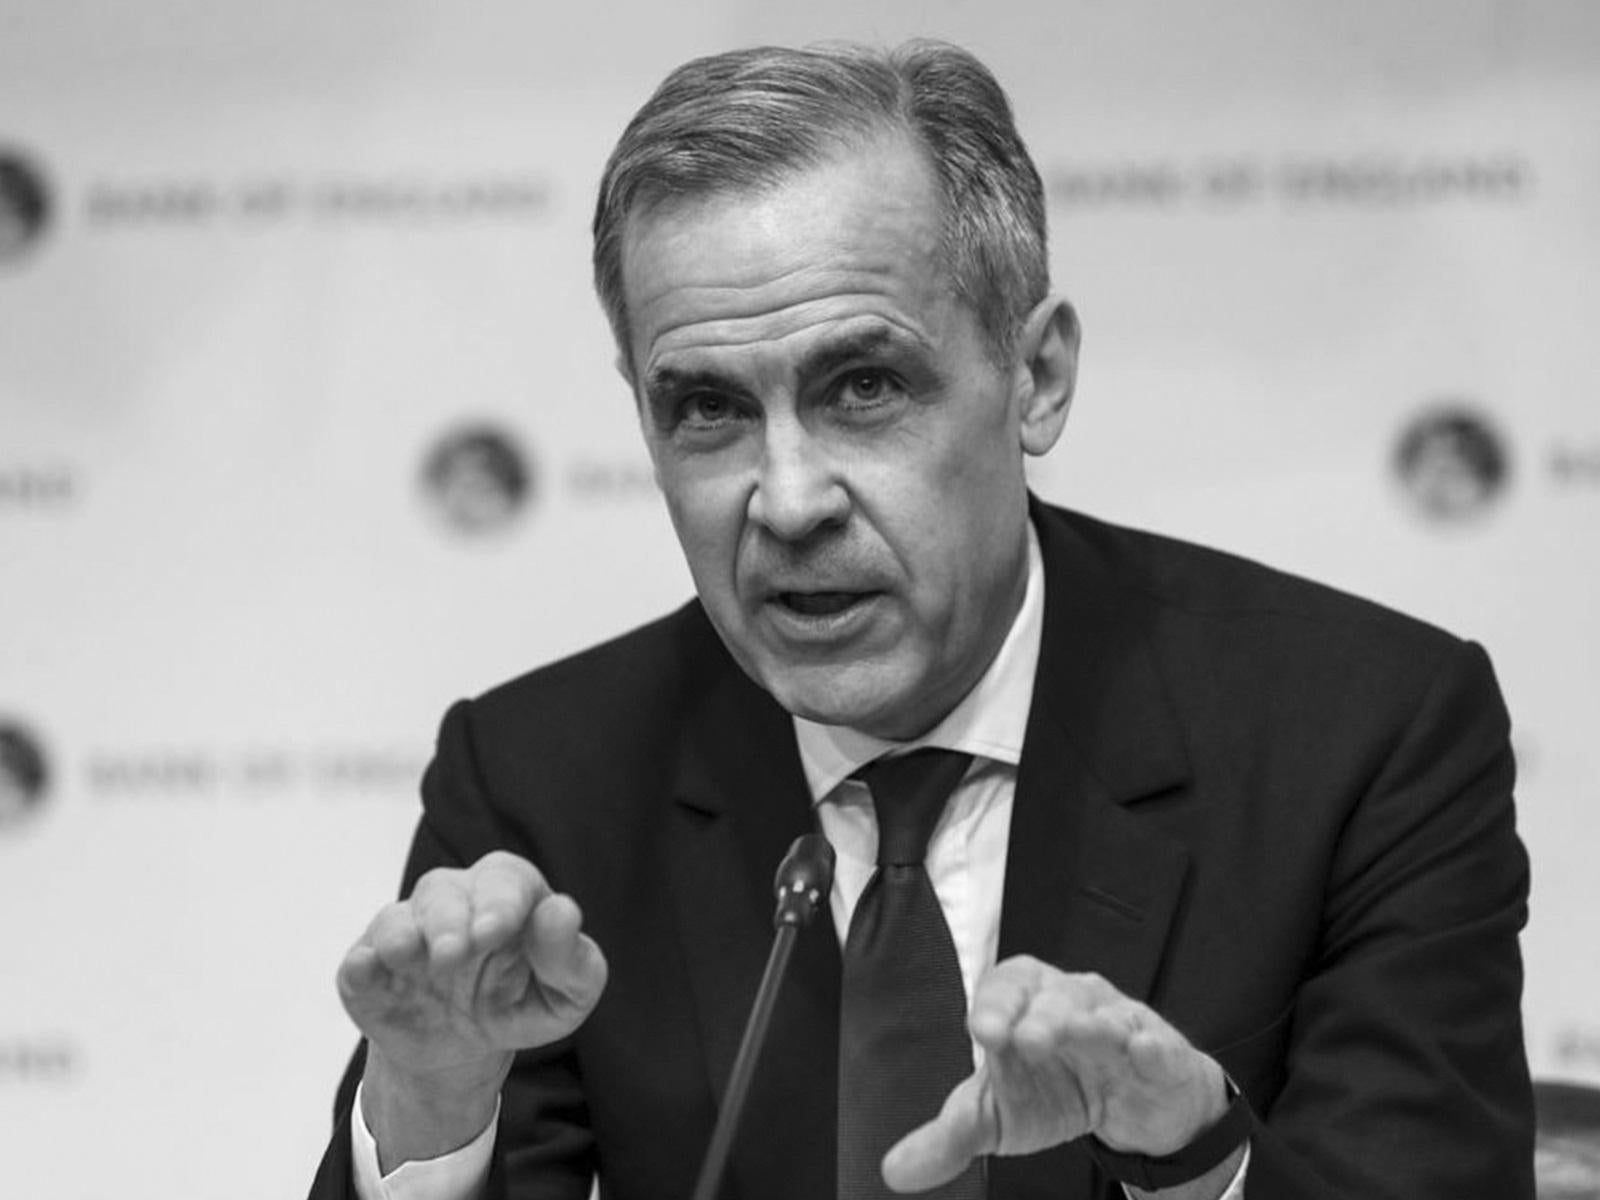 Mark Carney joins Brookfield